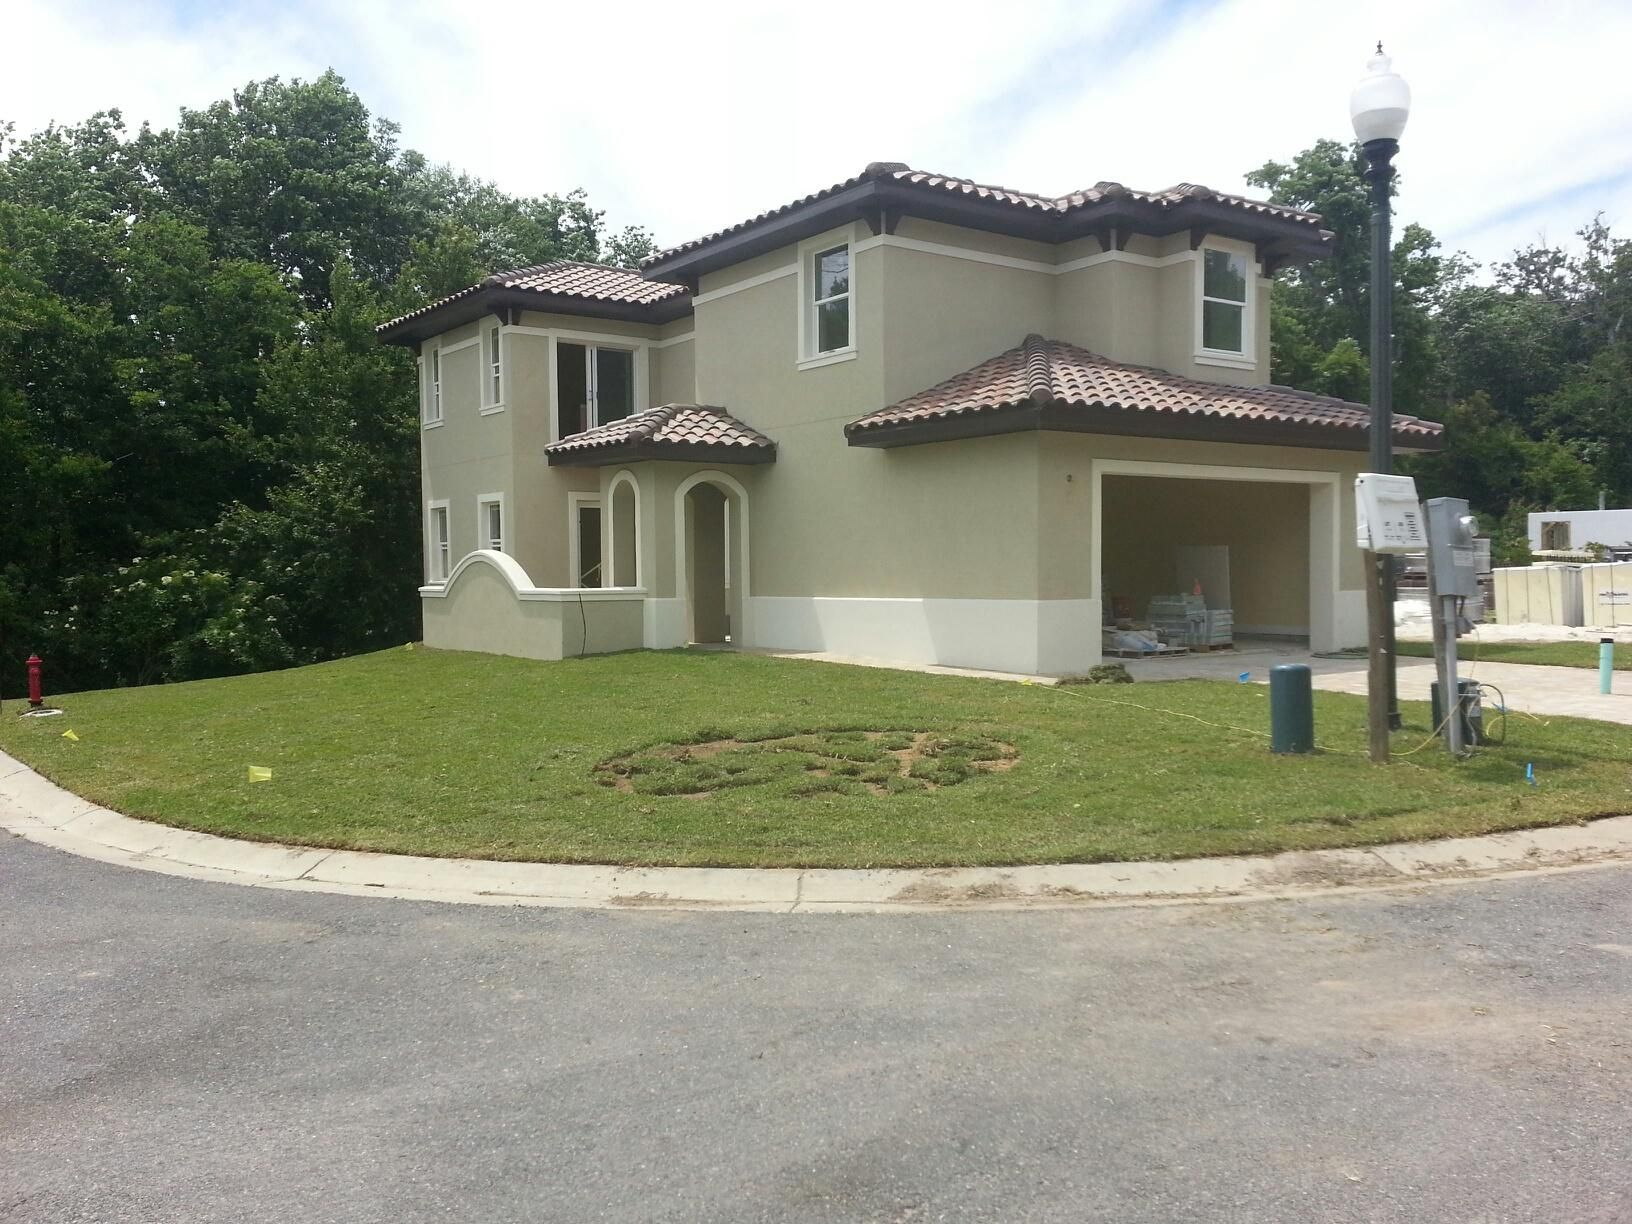 Sherwin williams basket beige exterior - Dream Home Sherwin Williams Relaxed Khaki Can T Wait To Move In